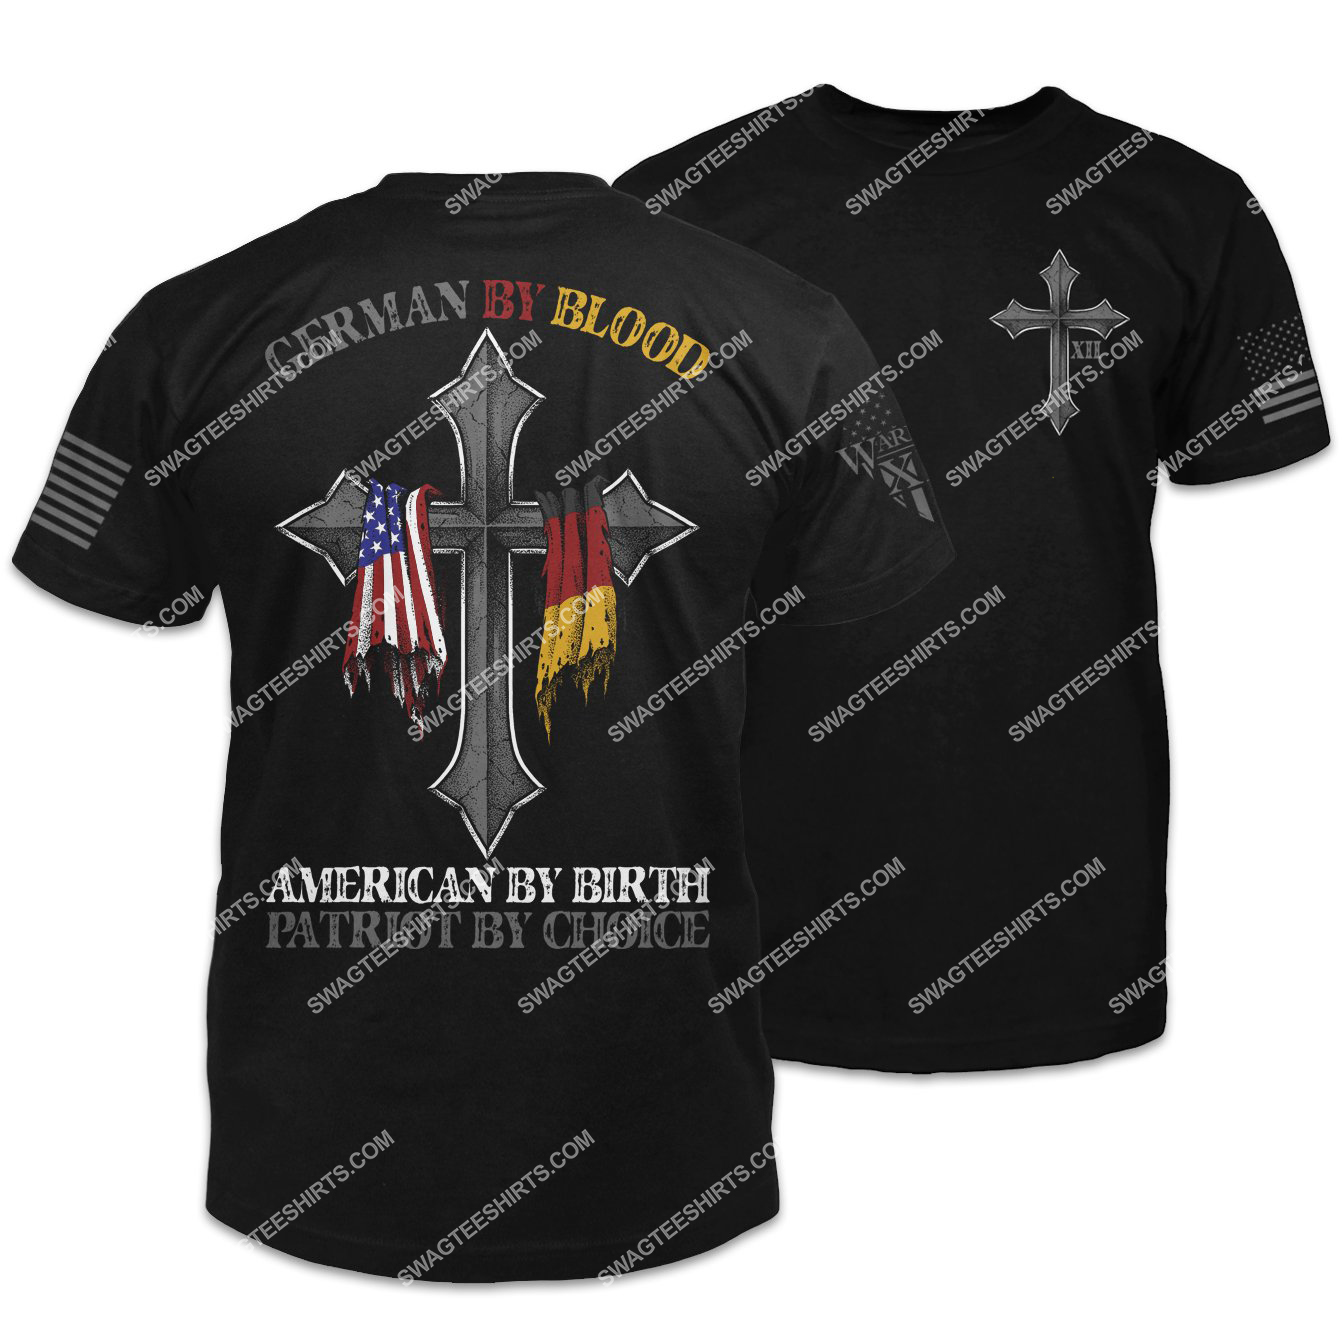 german by blood american by birth patriot by choice shirt 1 - Copy (3)